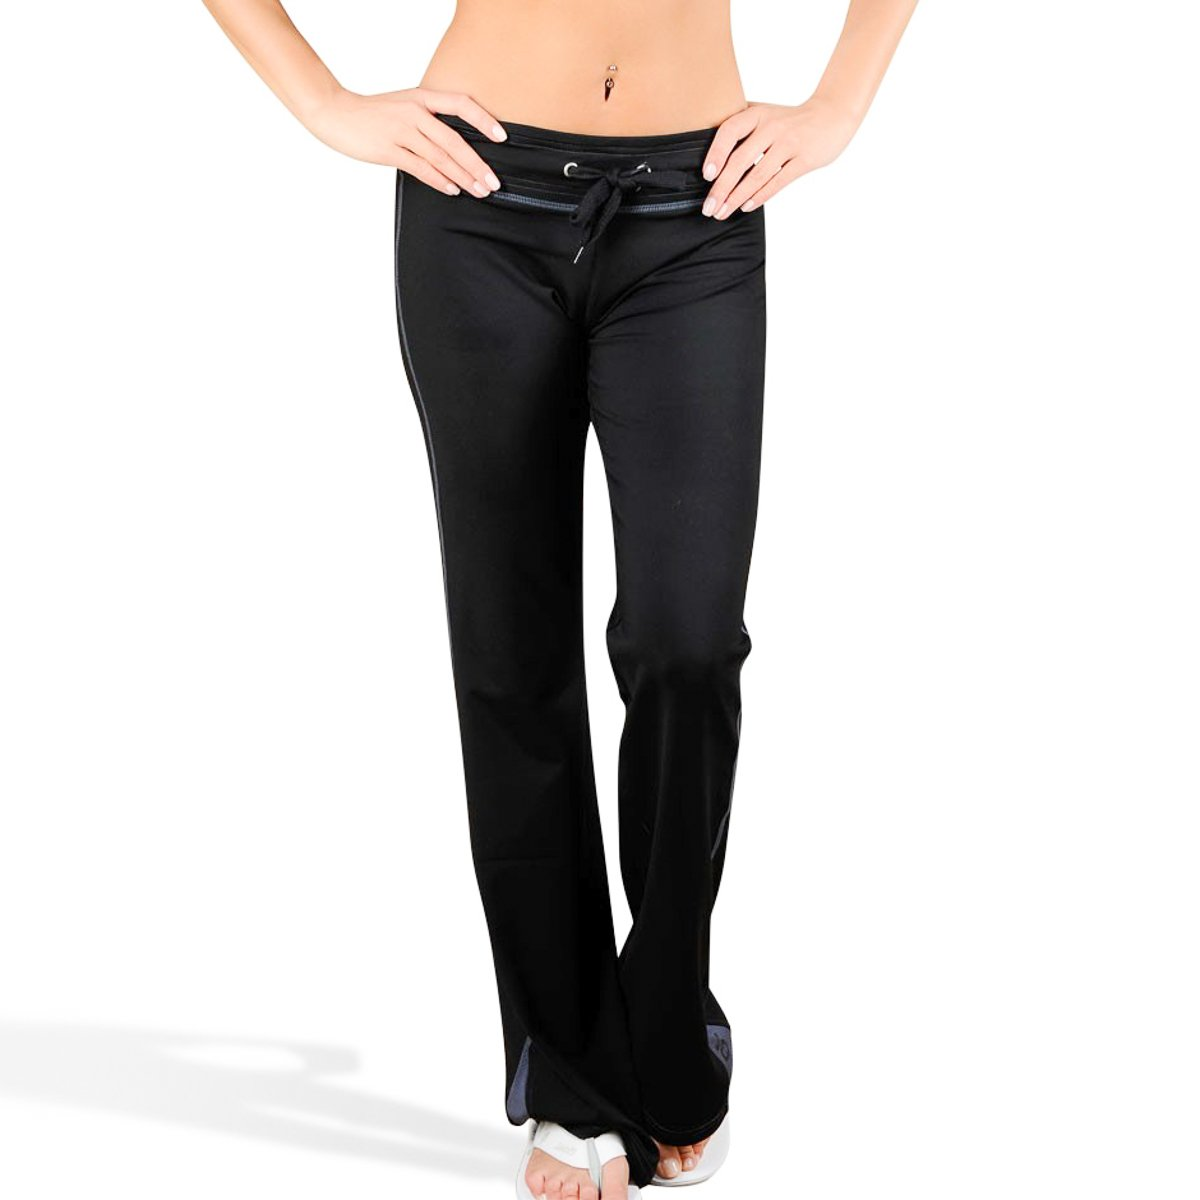 Jaco Athletic Pants for Women Large Black Yoga Pants Gym Clothes MMA Running Crossfit Pilates Sports